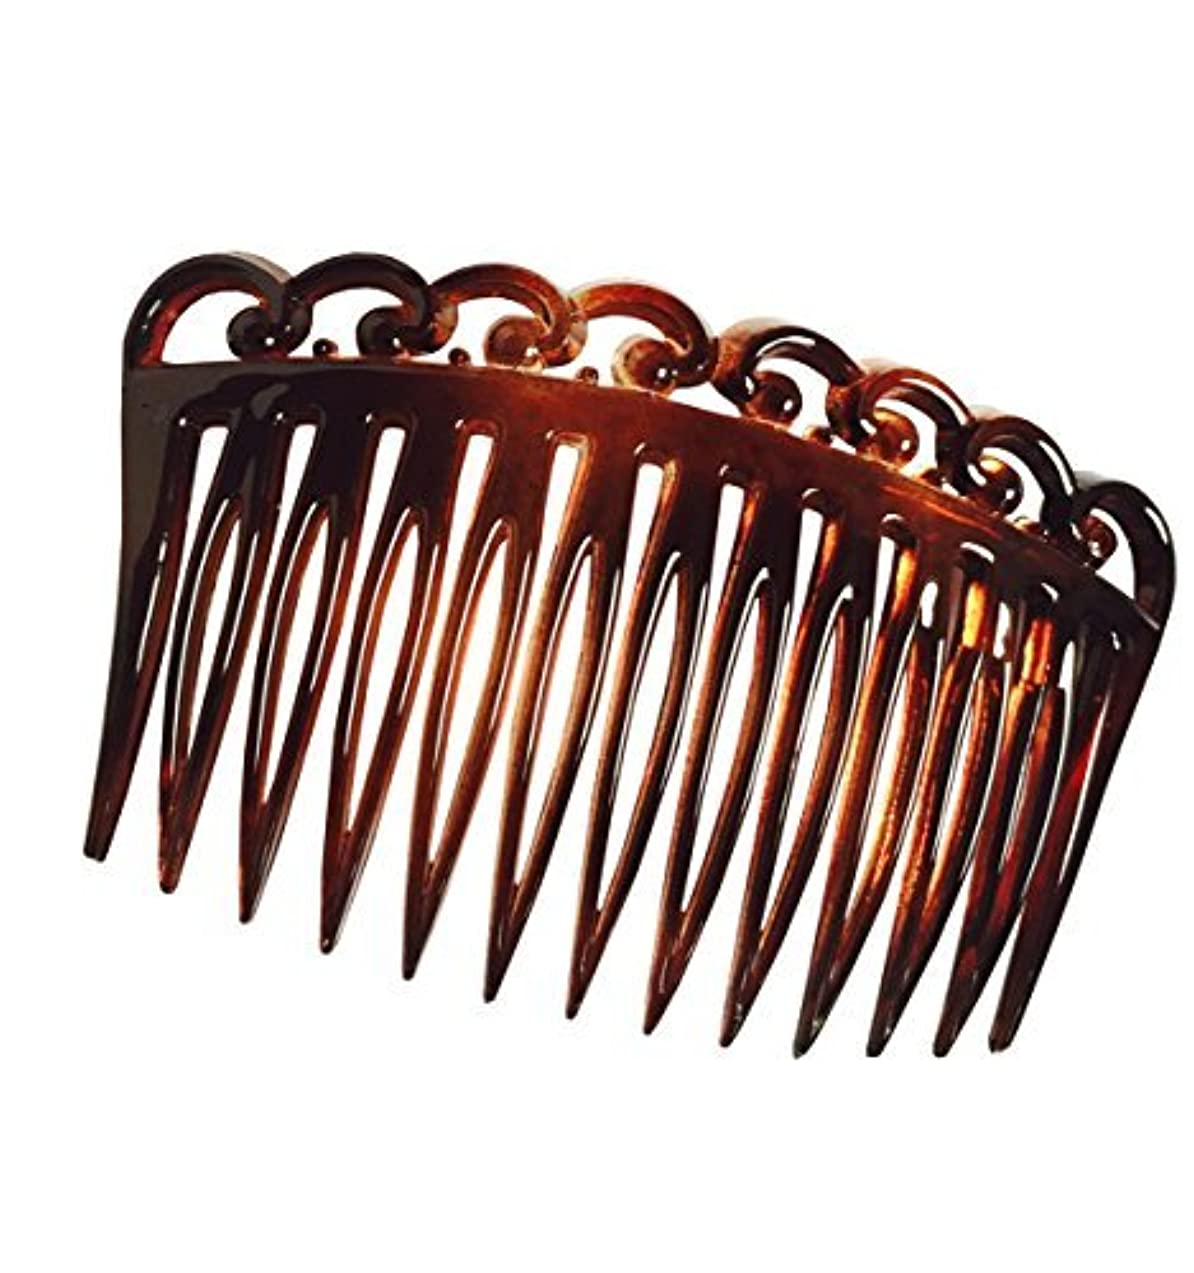 Parcelona French Swirl Set of 2 Celluloid Acetate Brown Tortoise Shell Side Hair Combs 2 Pcs [並行輸入品]